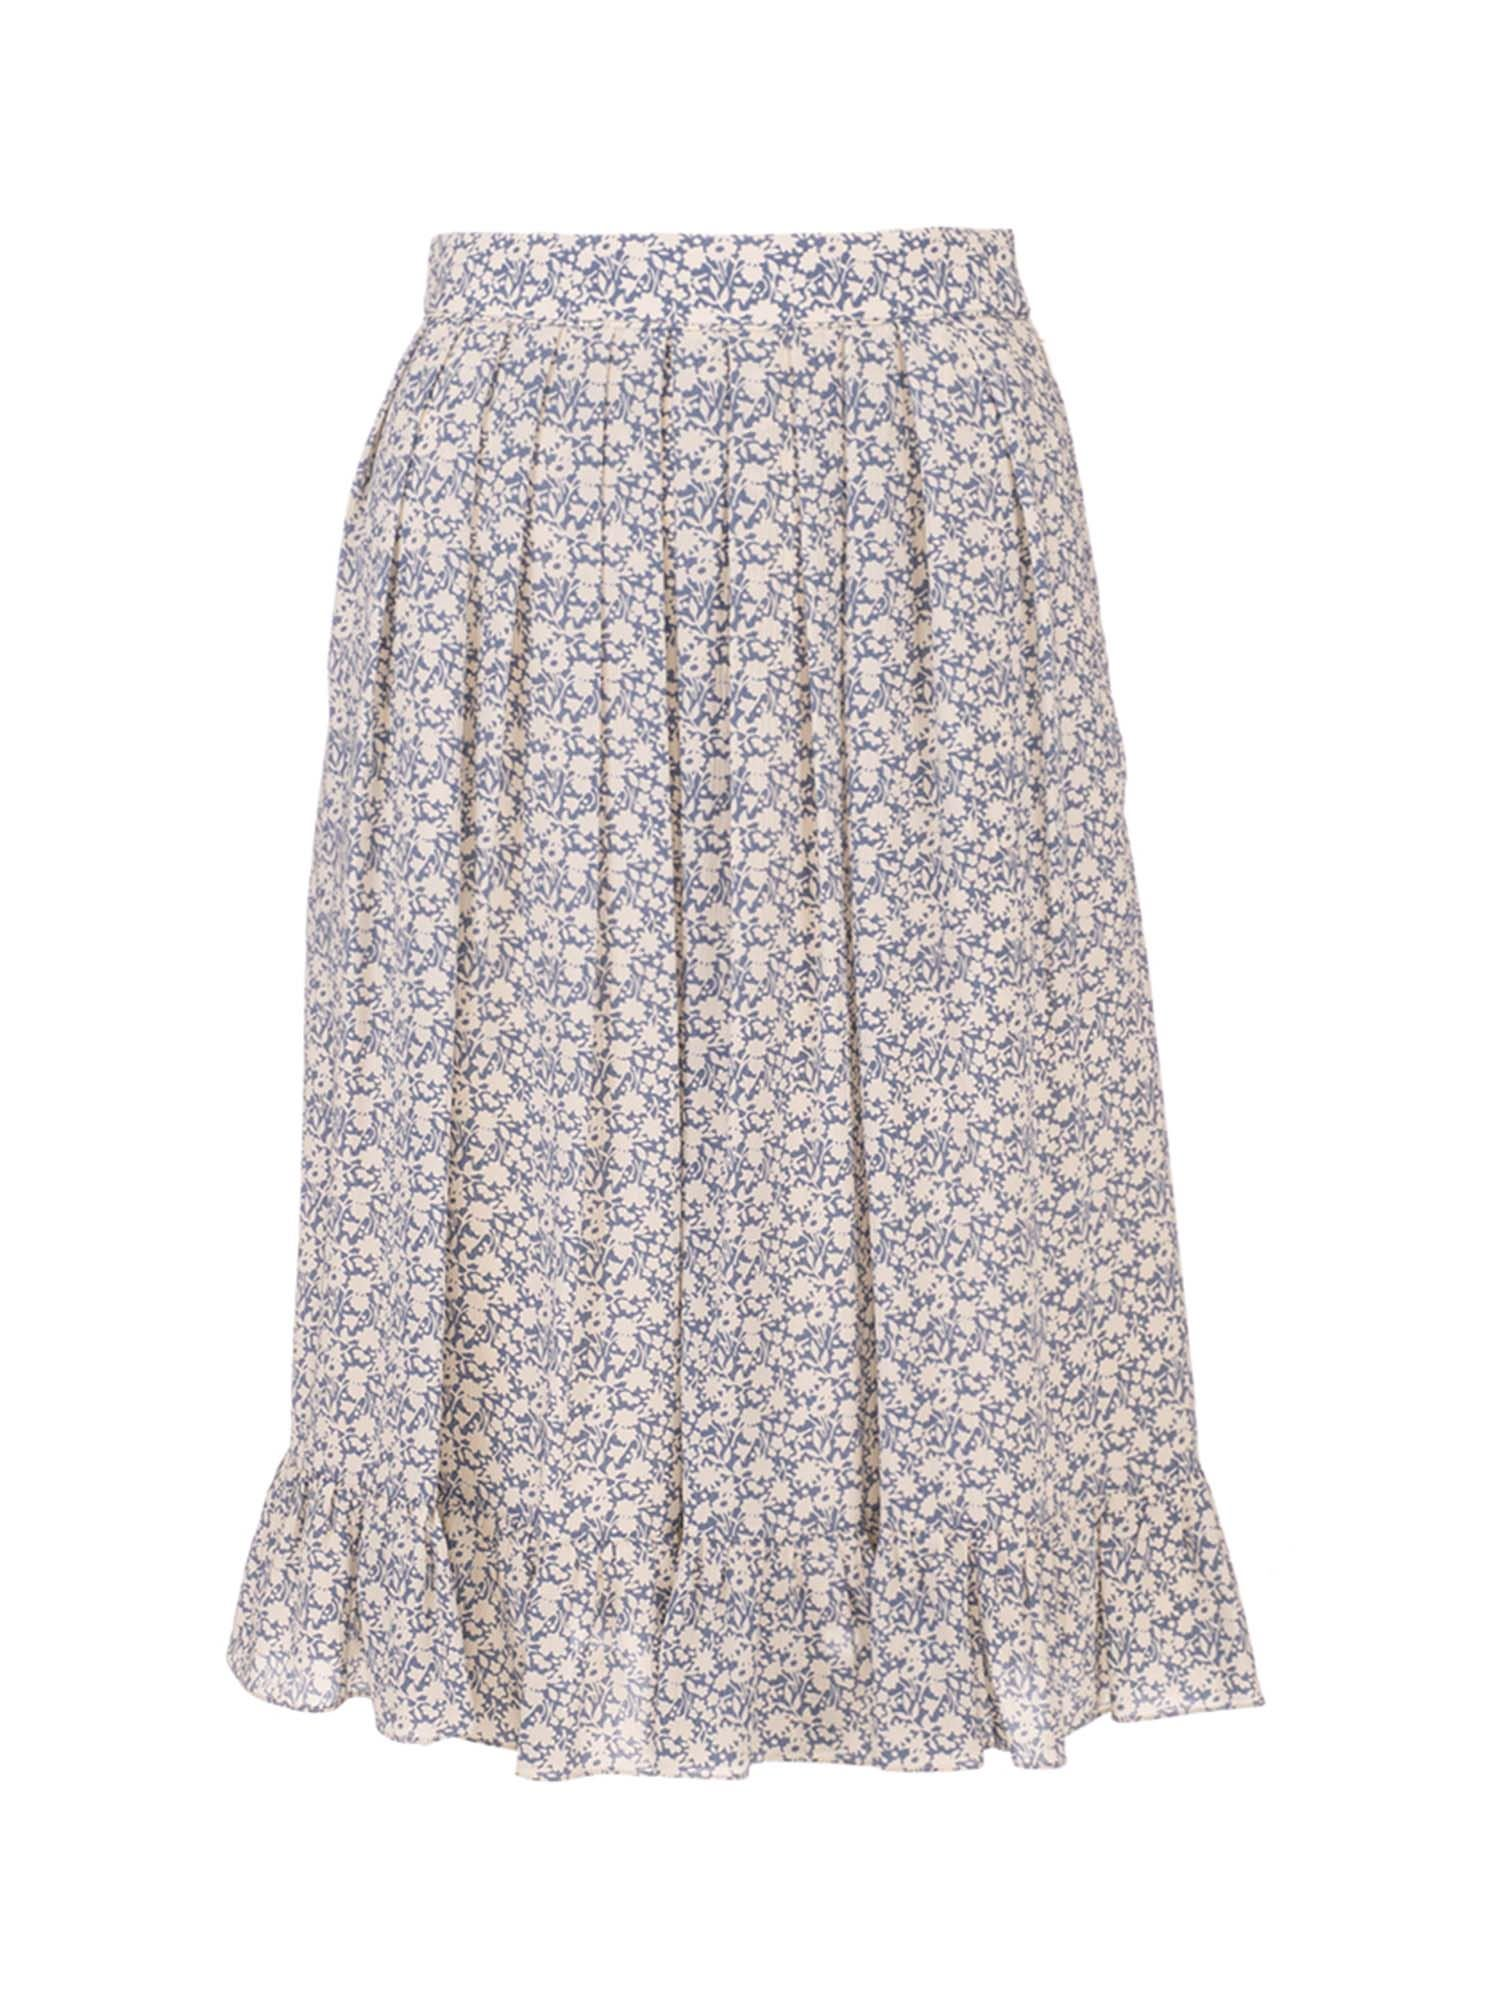 Celine FLORAL PLEATED SKIRT IN LIGHT BLUE AND WHITE